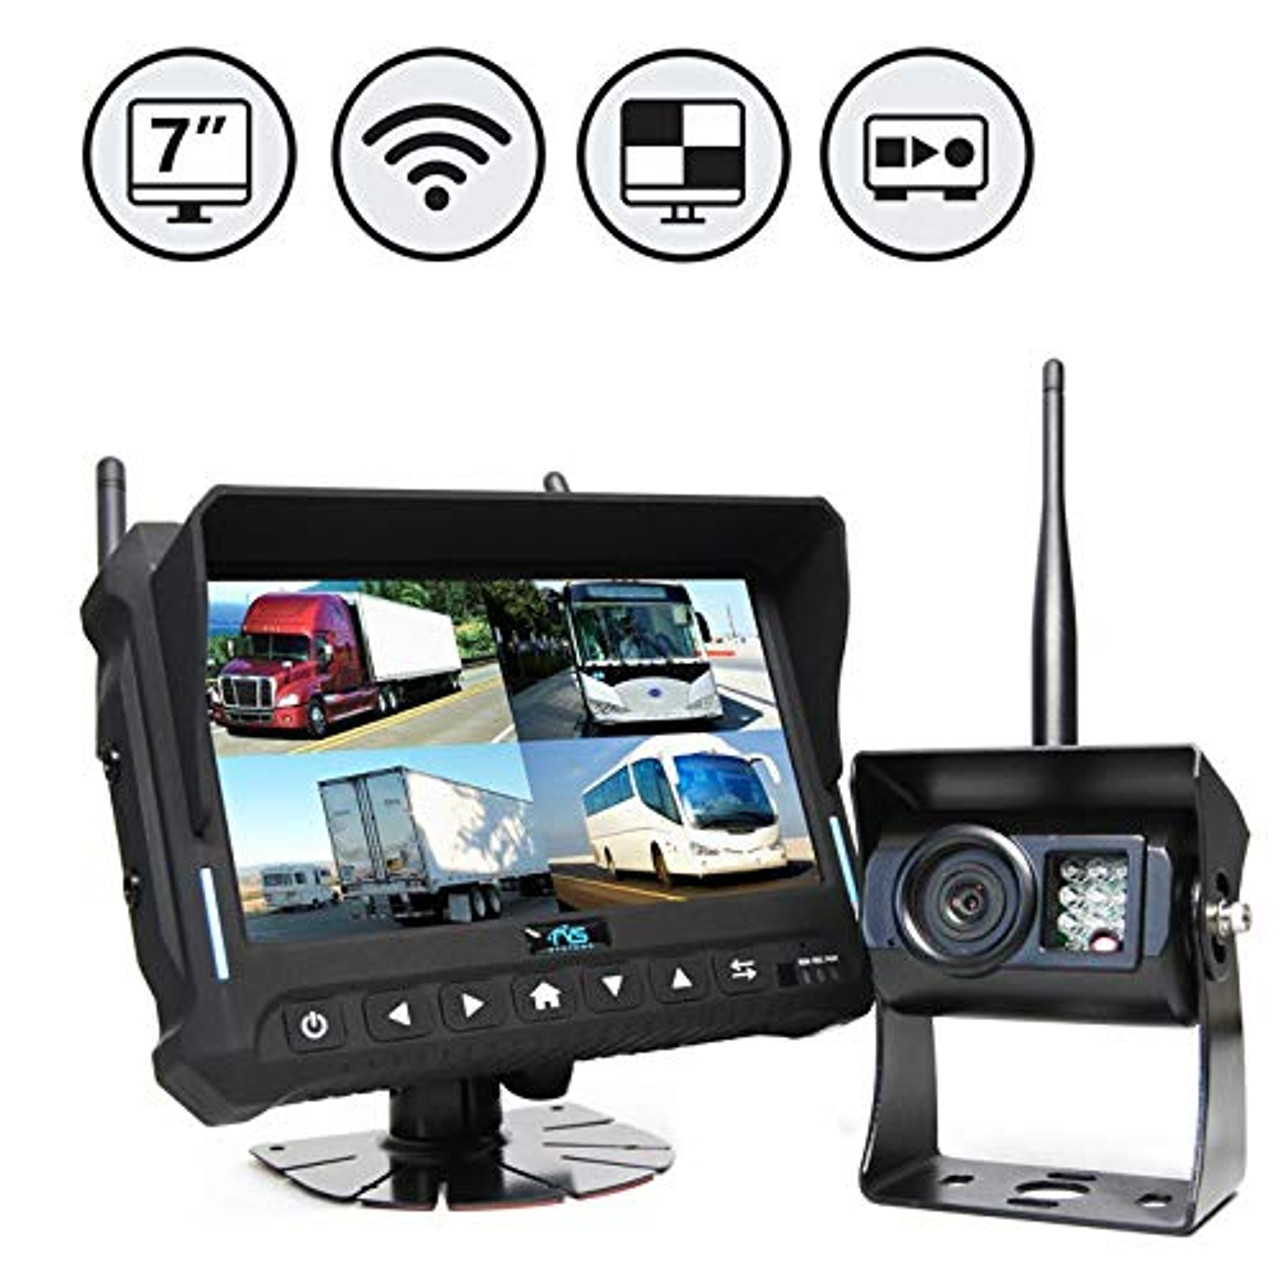 "7"" QV Monitor w/DVR, Left Side Camera, RVS-Mount 